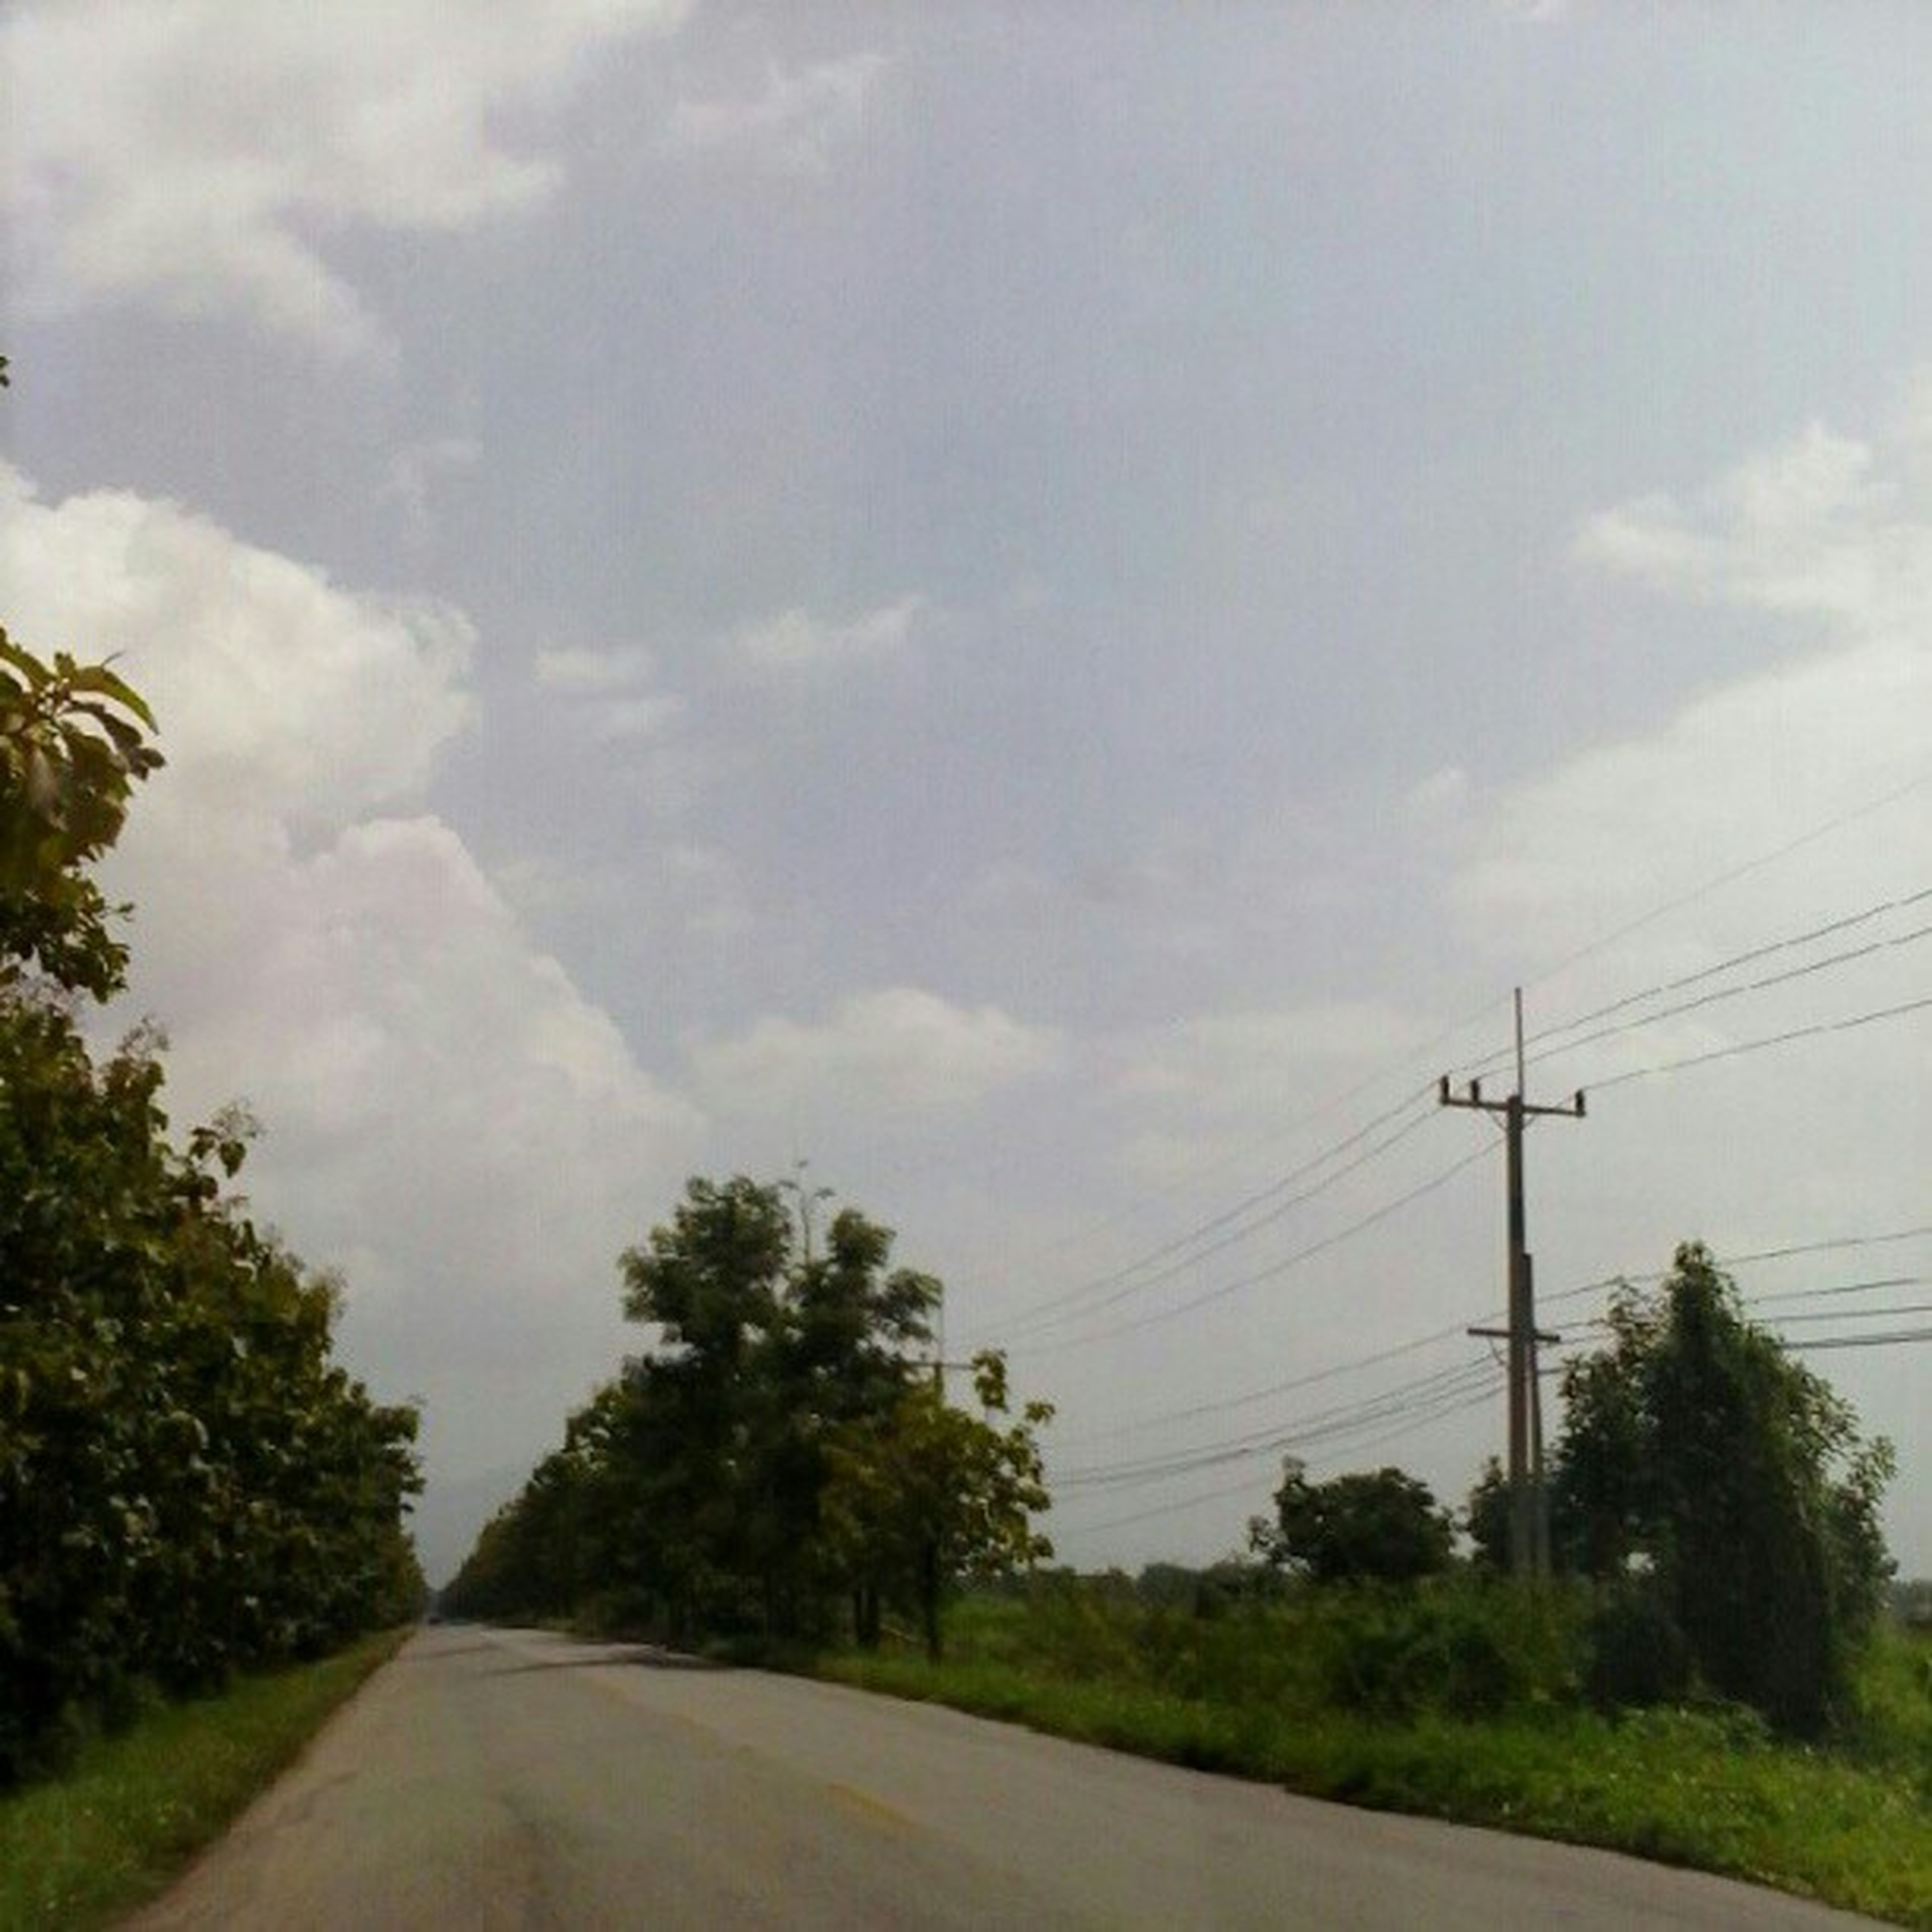 power line, electricity pylon, transportation, road, sky, the way forward, tree, connection, electricity, power supply, cable, diminishing perspective, country road, vanishing point, cloud - sky, power cable, road marking, nature, landscape, street